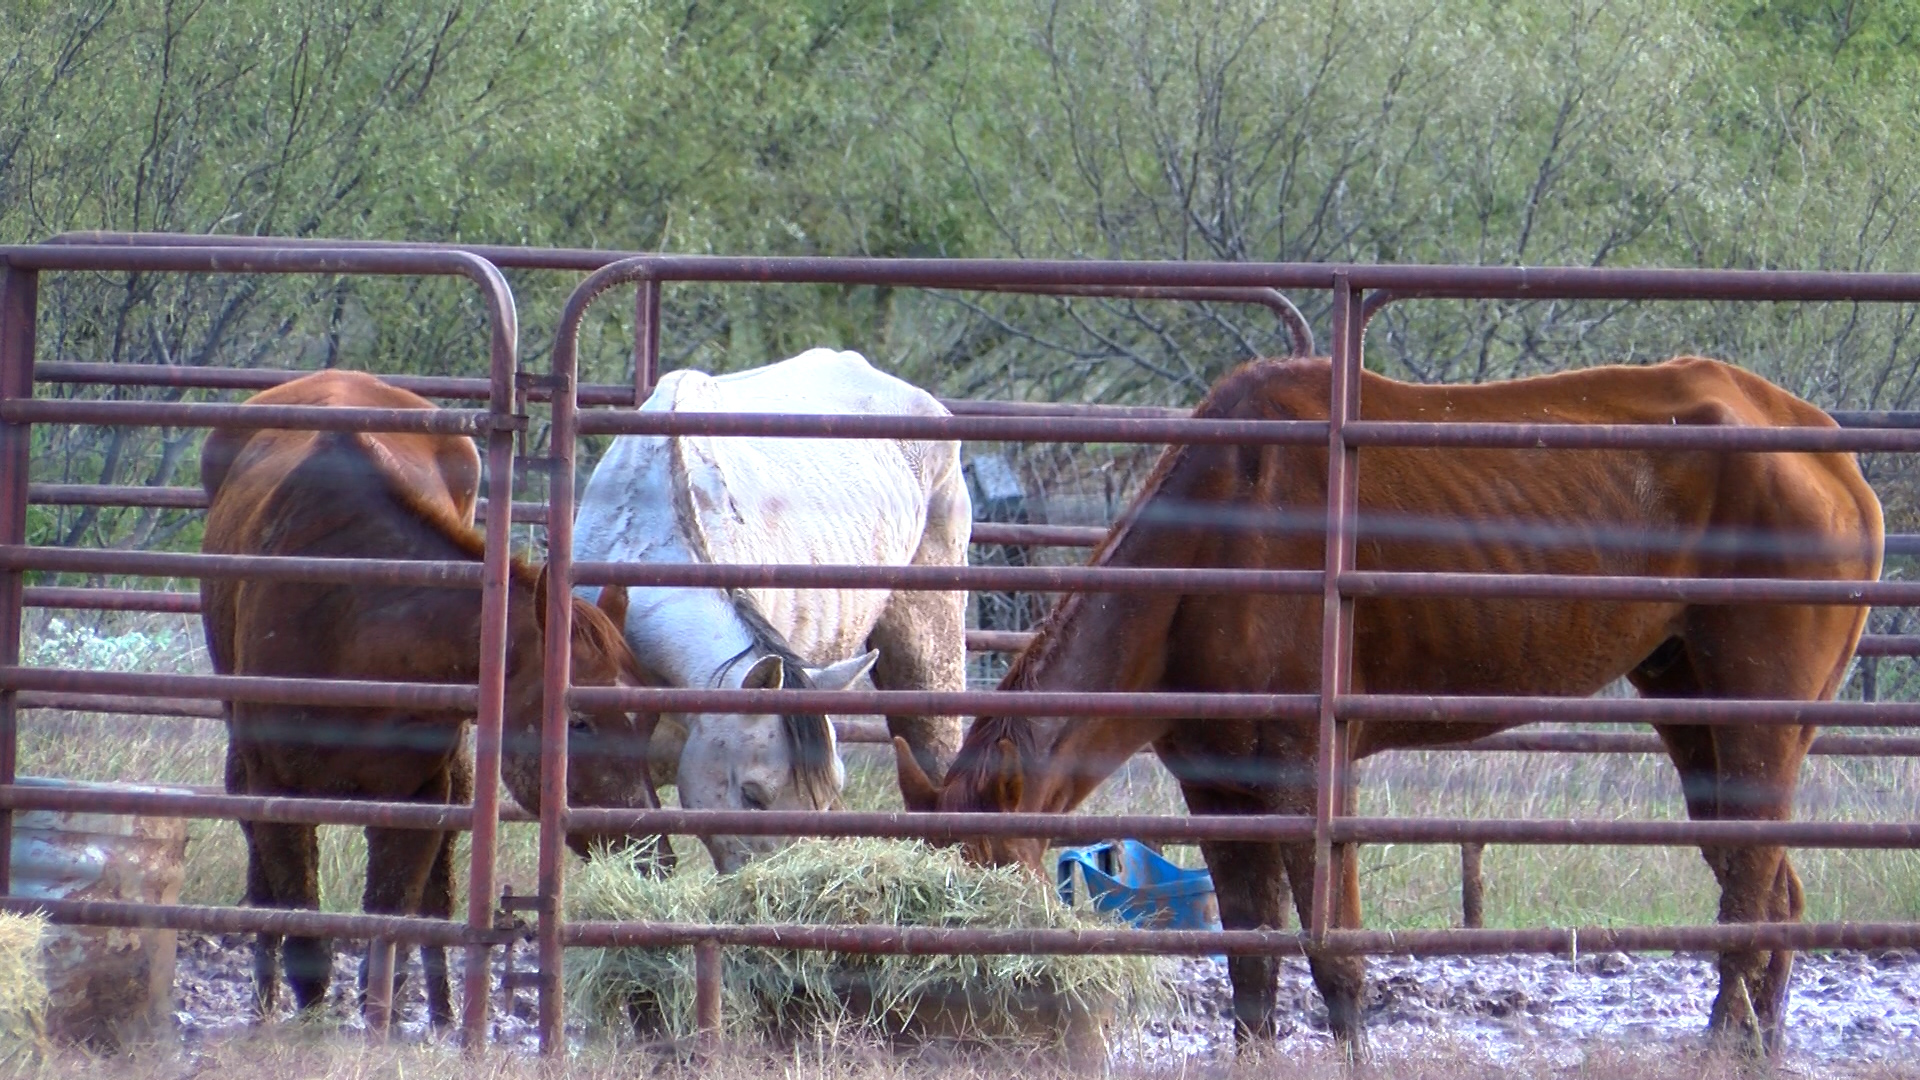 No Charges Anticipated For Alleged Animal Neglect Incident